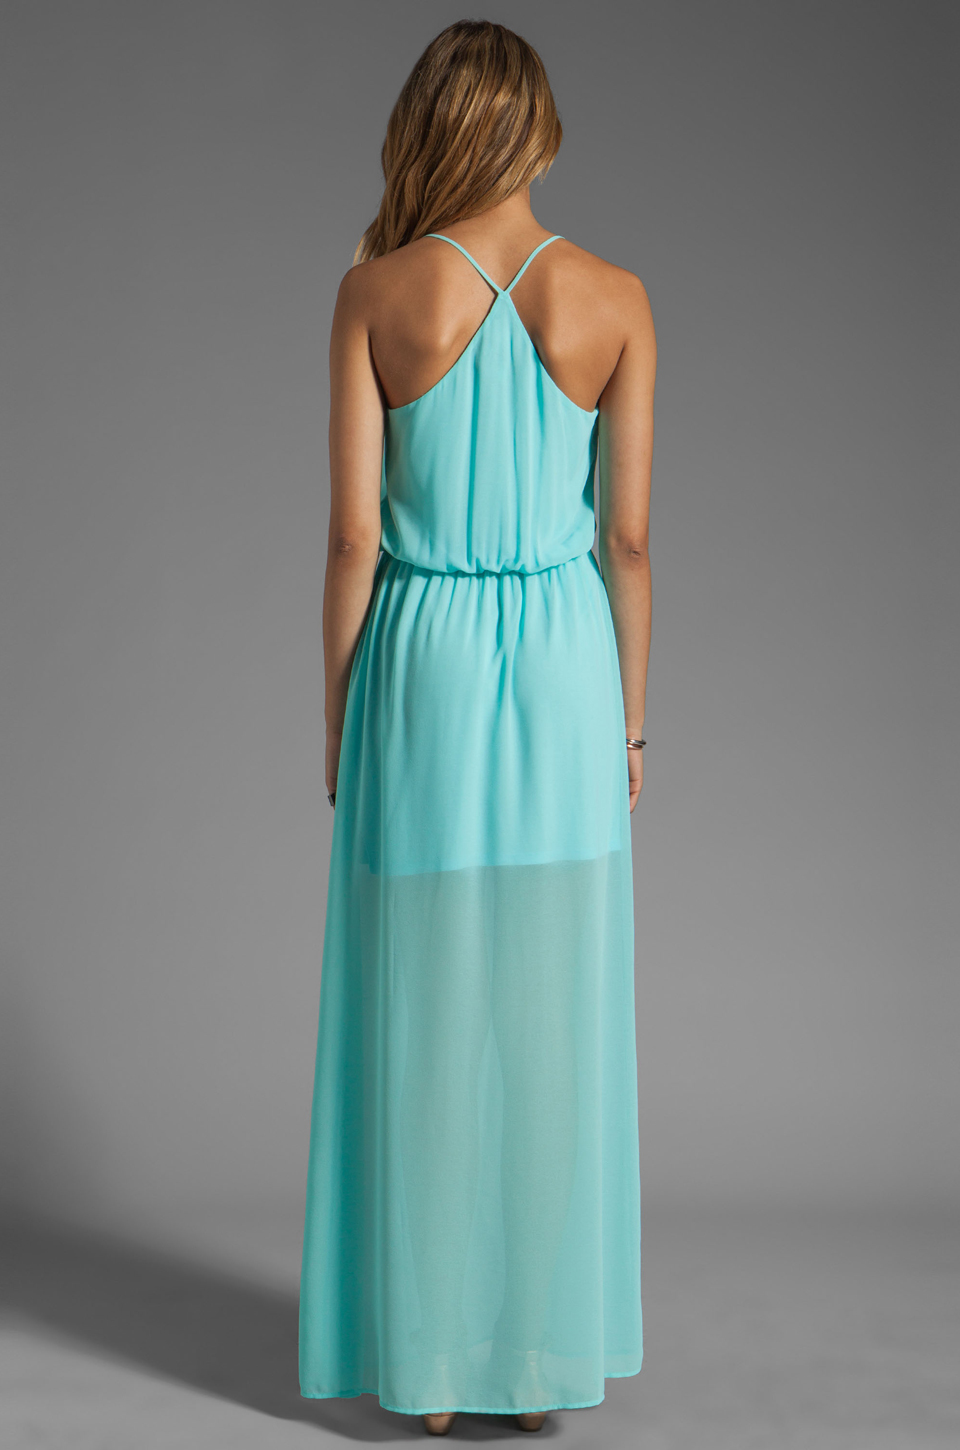 Rory Beca Hess Drape Gown in Ice